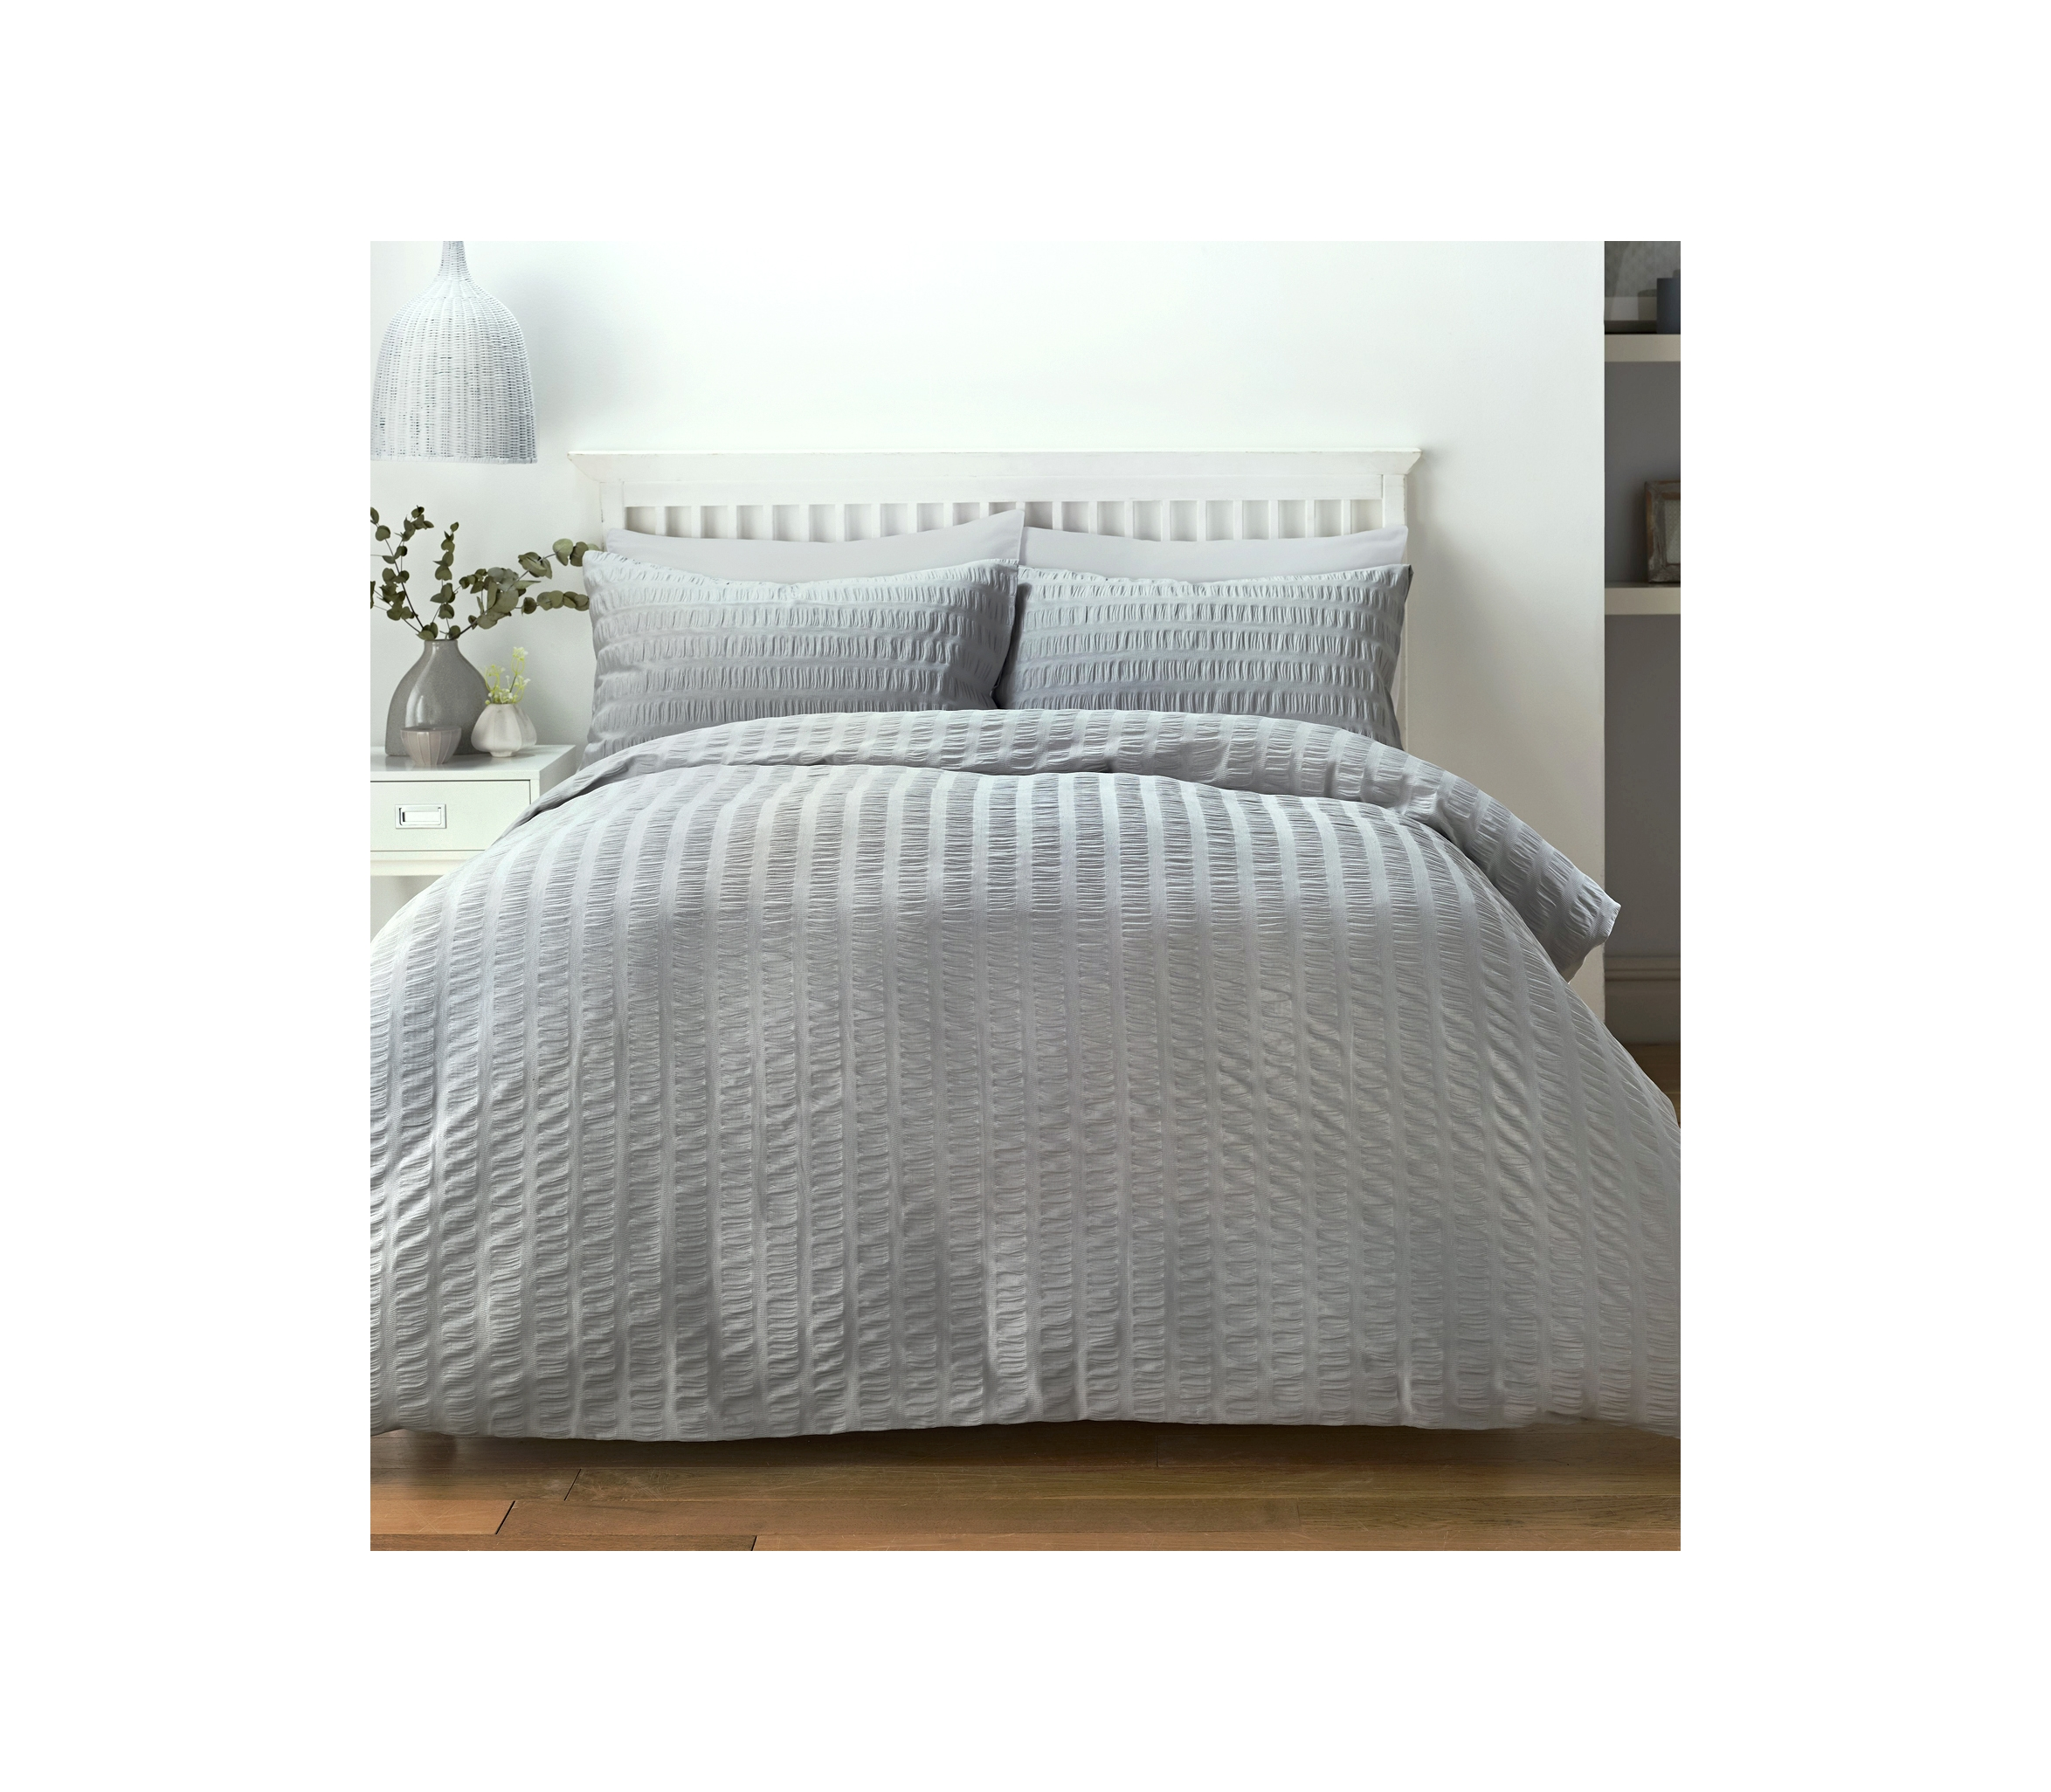 Serene Seersucker Grey Duvet Cover Set J Rosenthal Amp Son